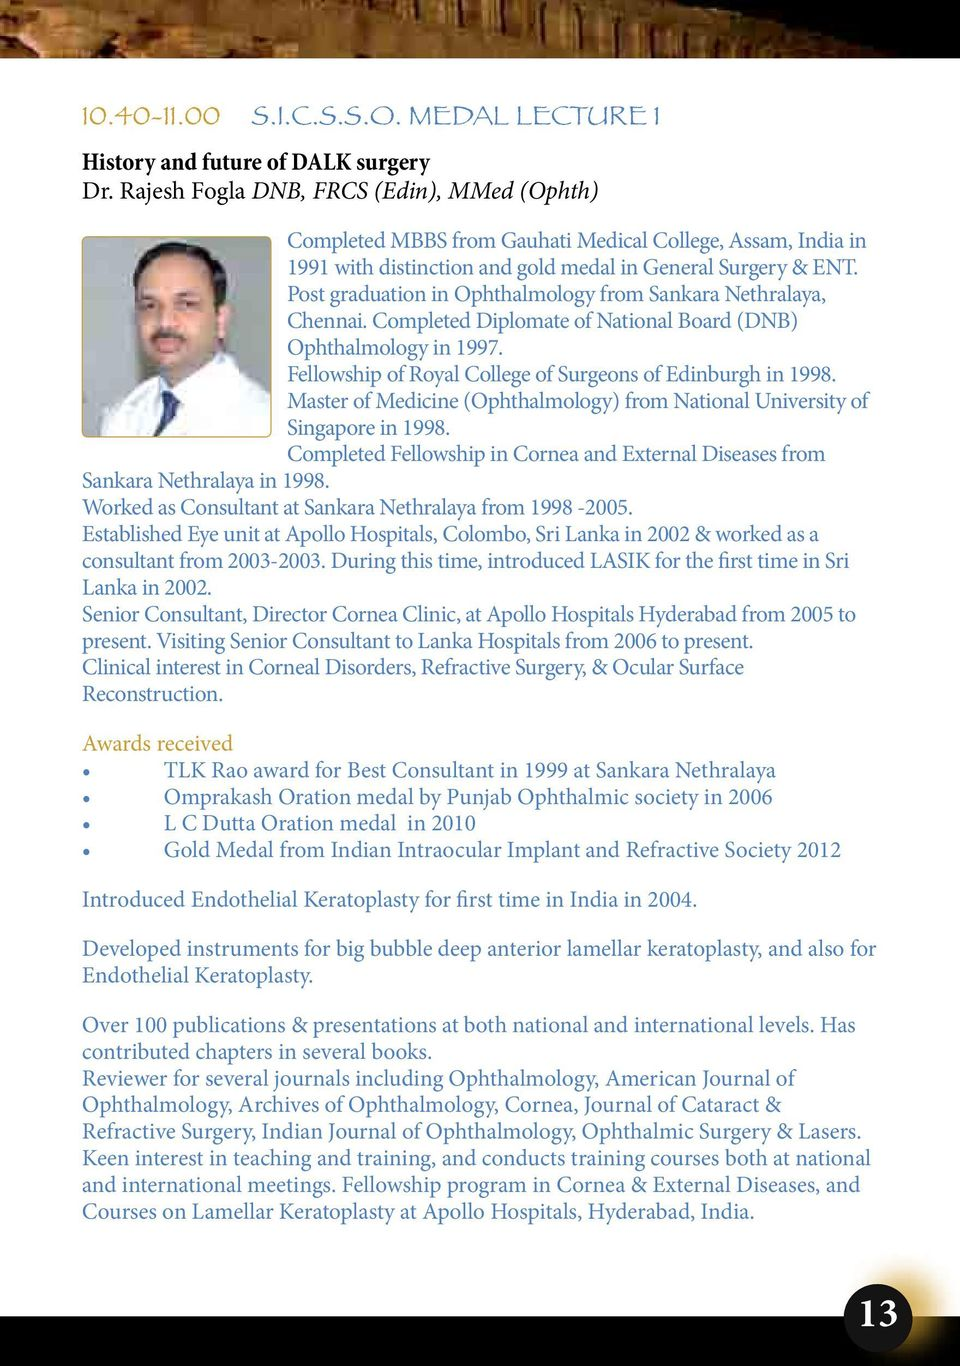 Post graduation in Ophthalmology from Sankara Nethralaya, Chennai. Completed Diplomate of National Board (DNB) Ophthalmology in 1997. Fellowship of Royal College of Surgeons of Edinburgh in 1998.